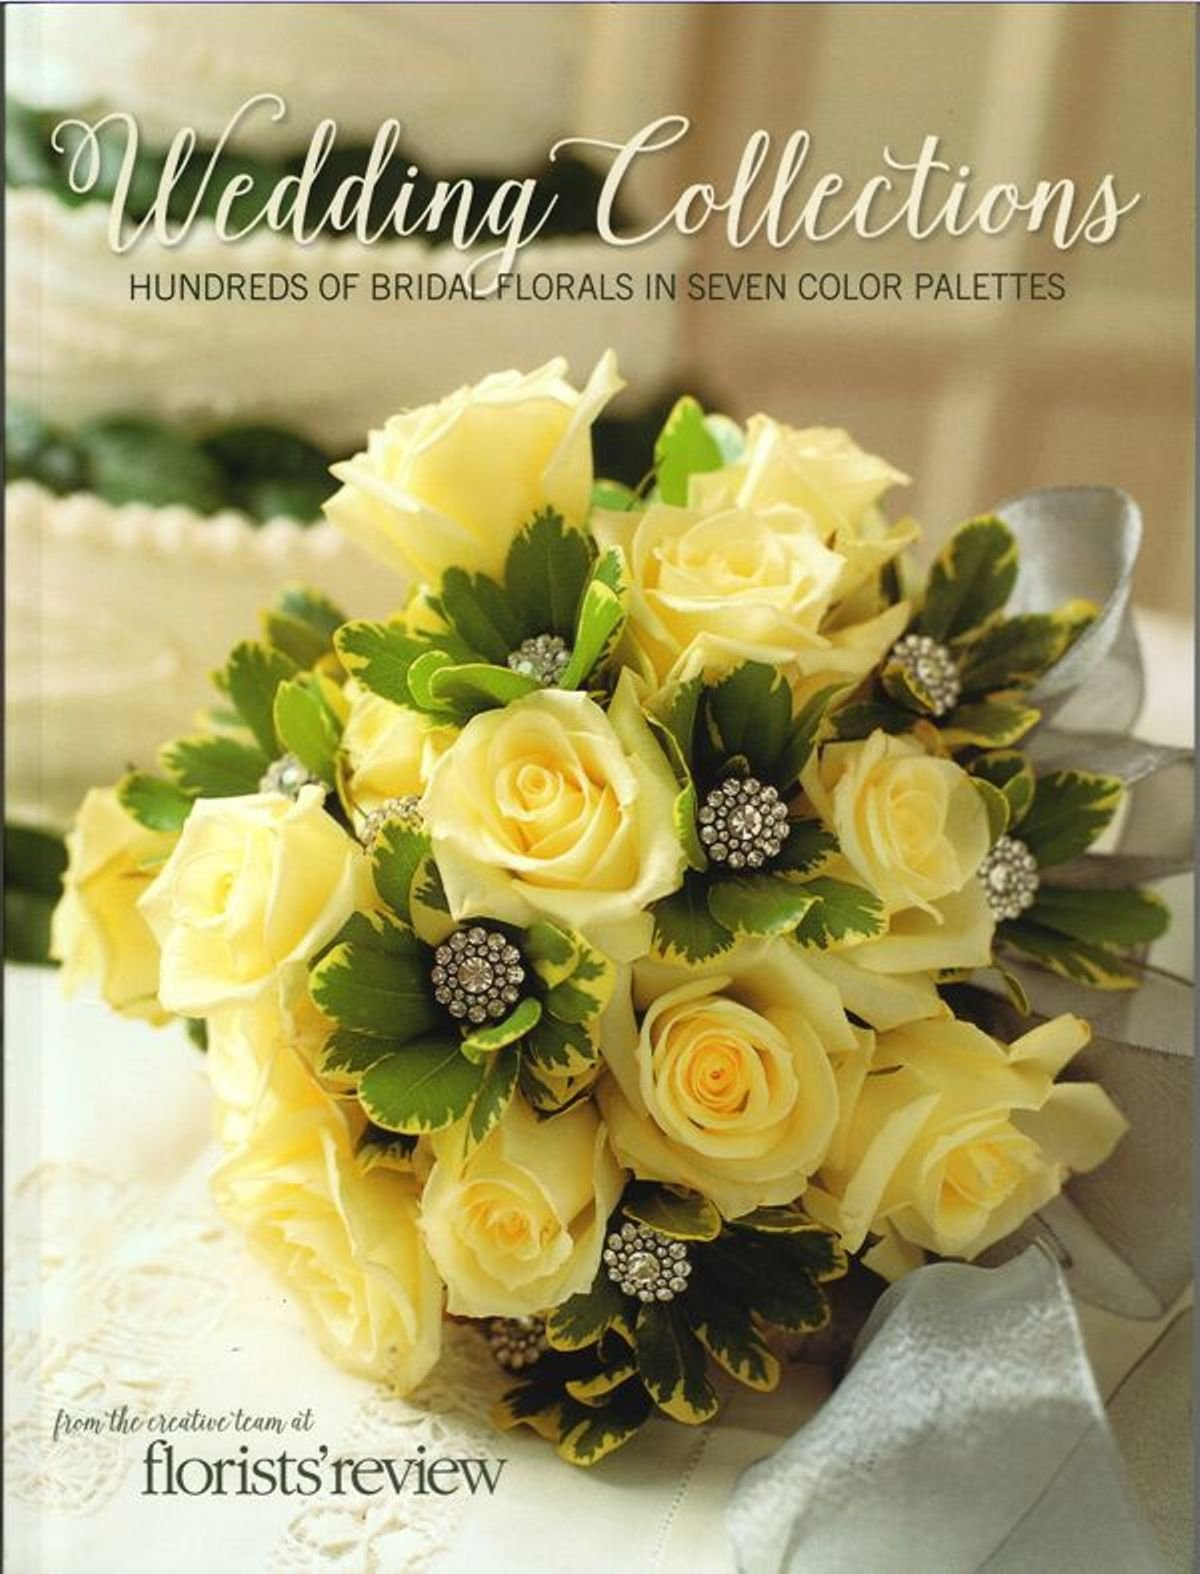 Wedding Collections Hundreds Of Bridal Florals In Seven Color